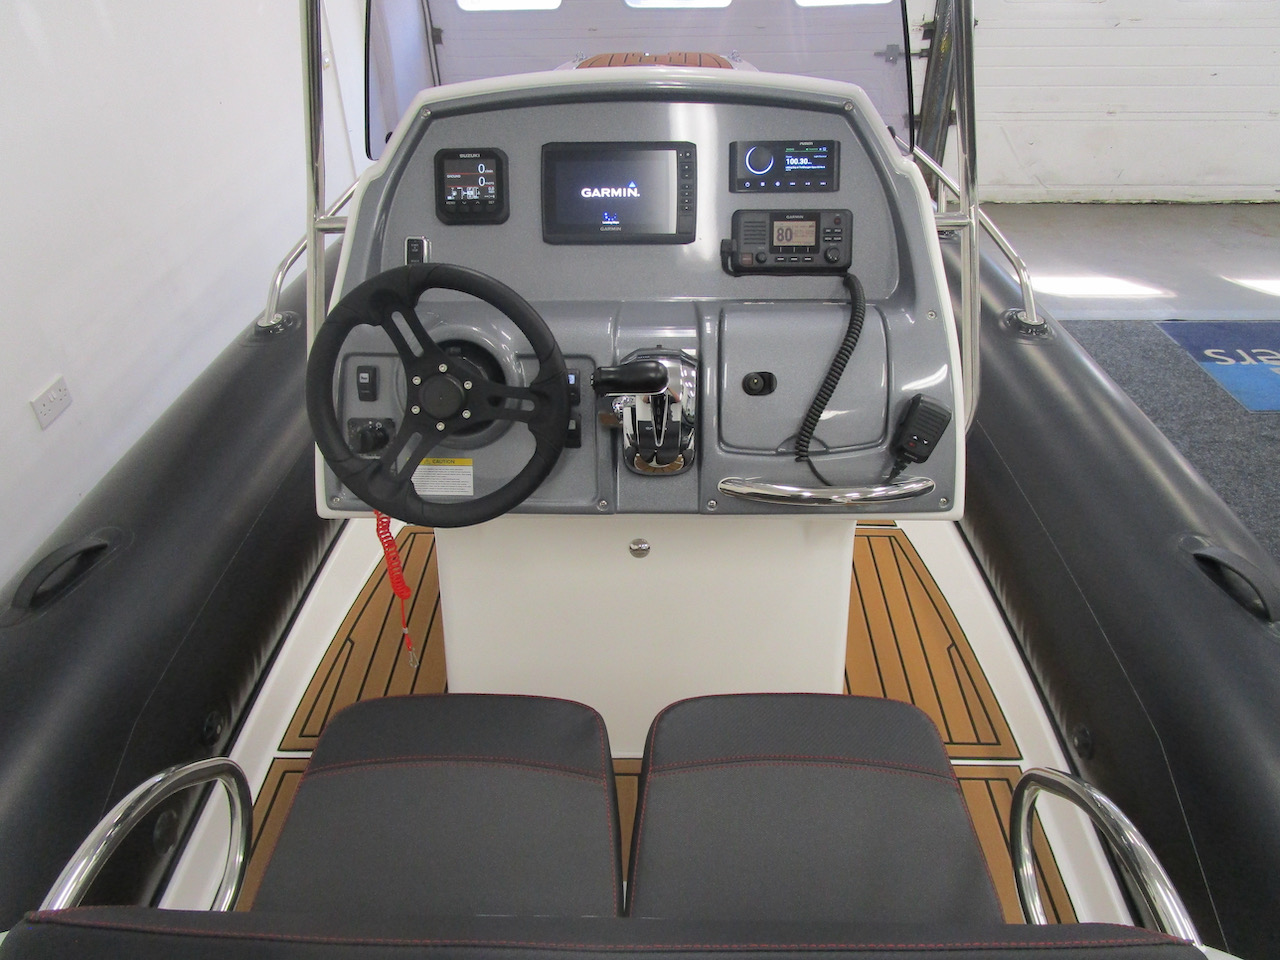 Grand RIB Golden Line G650 Helm seats and console